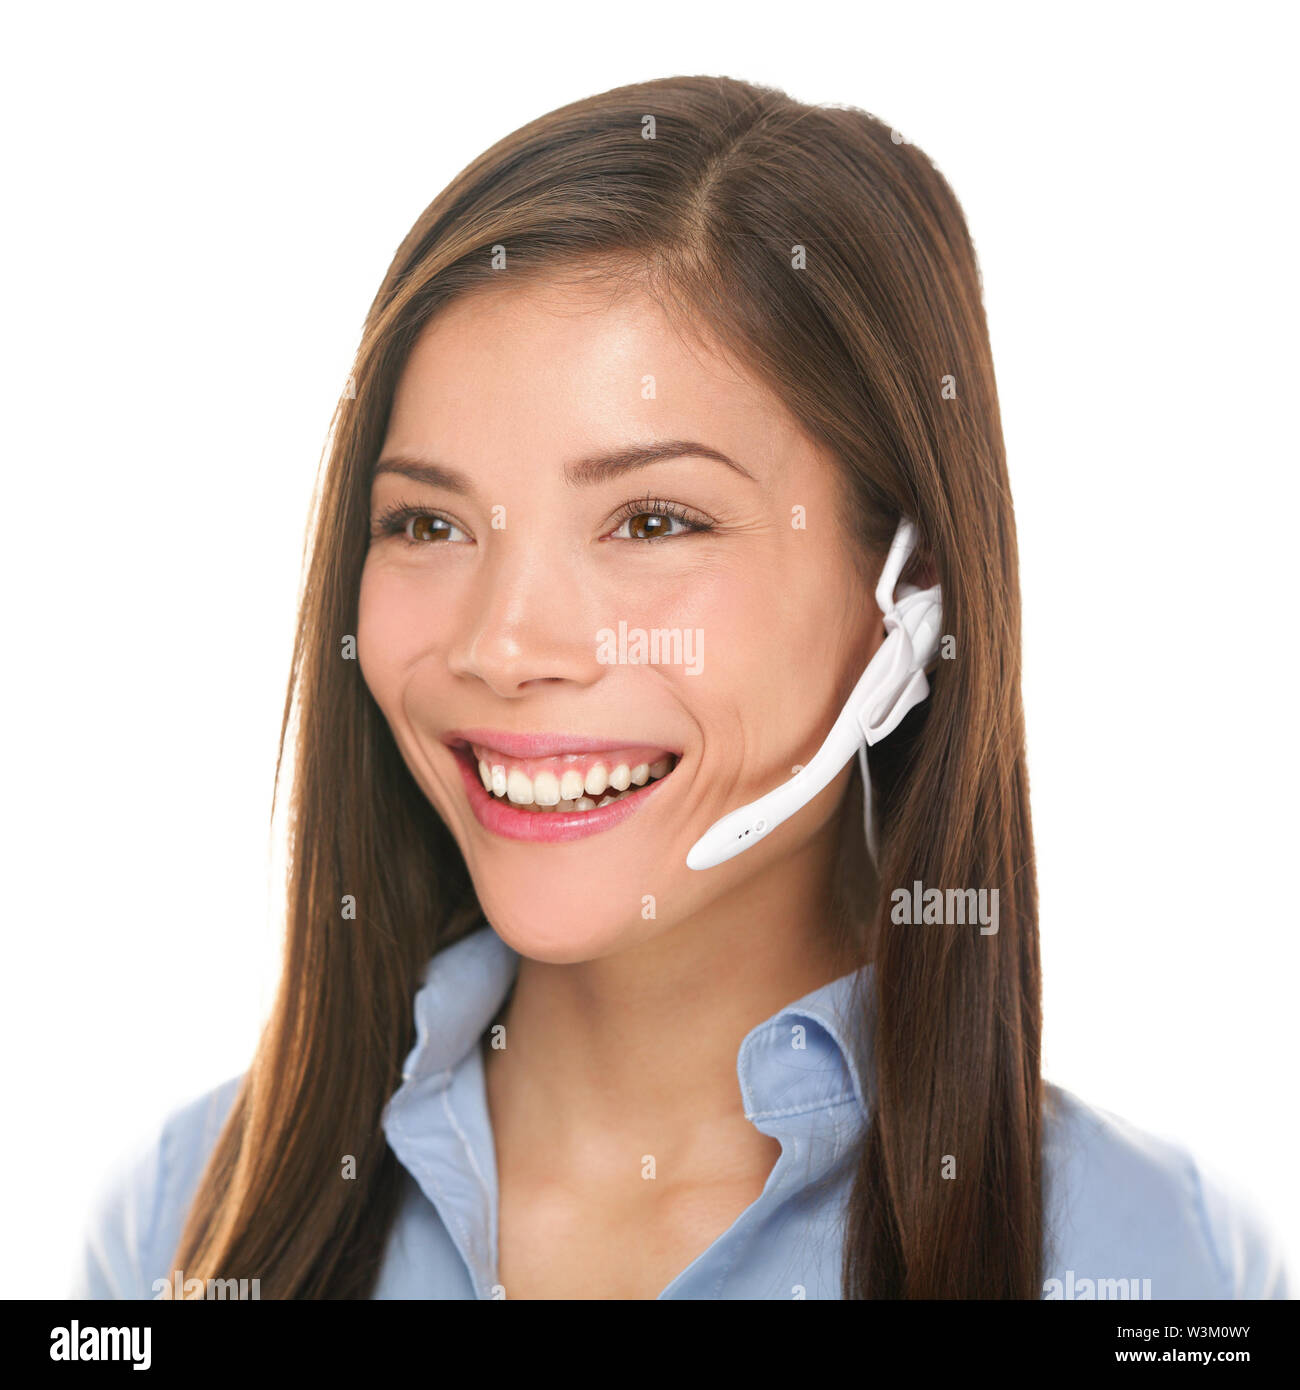 Headset customer service woman talking friendly smiling happy in call center on isolated on white background. Beautiful young mixed race Caucasian / Asian Chinese business woman working at hotline. Stock Photo